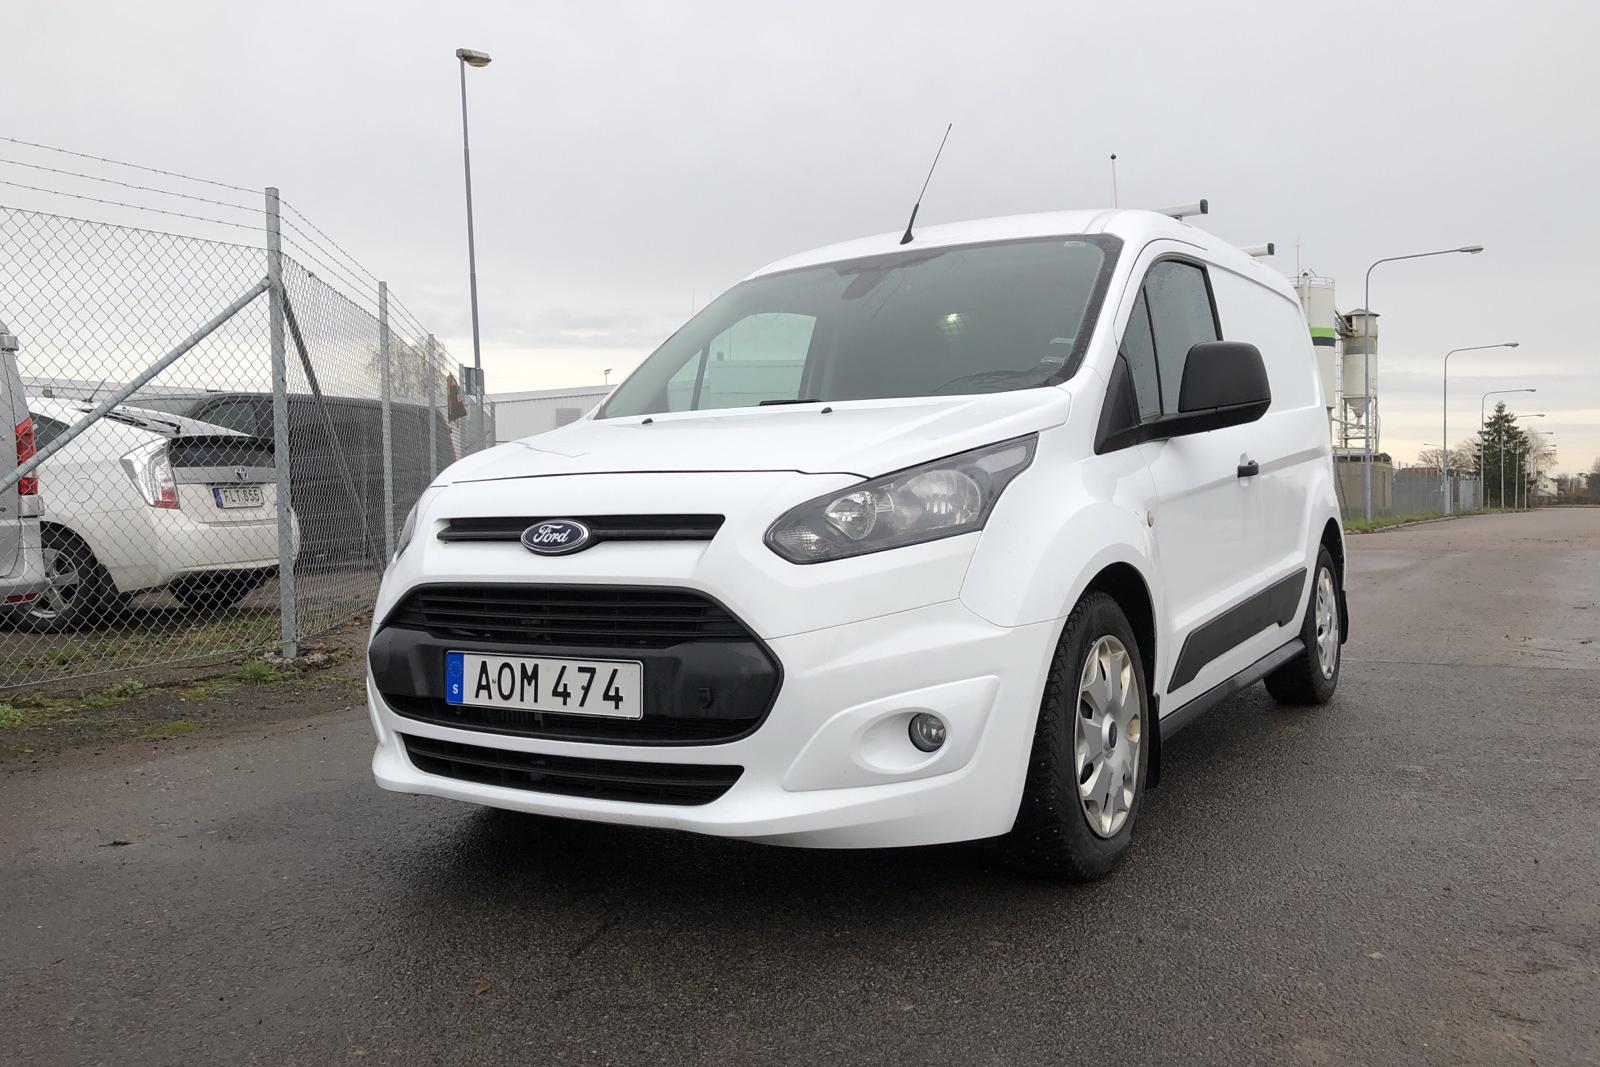 Ford Transit Connect 1.6 TDCi (95hk) - 71 600 km - Manual - white - 2015